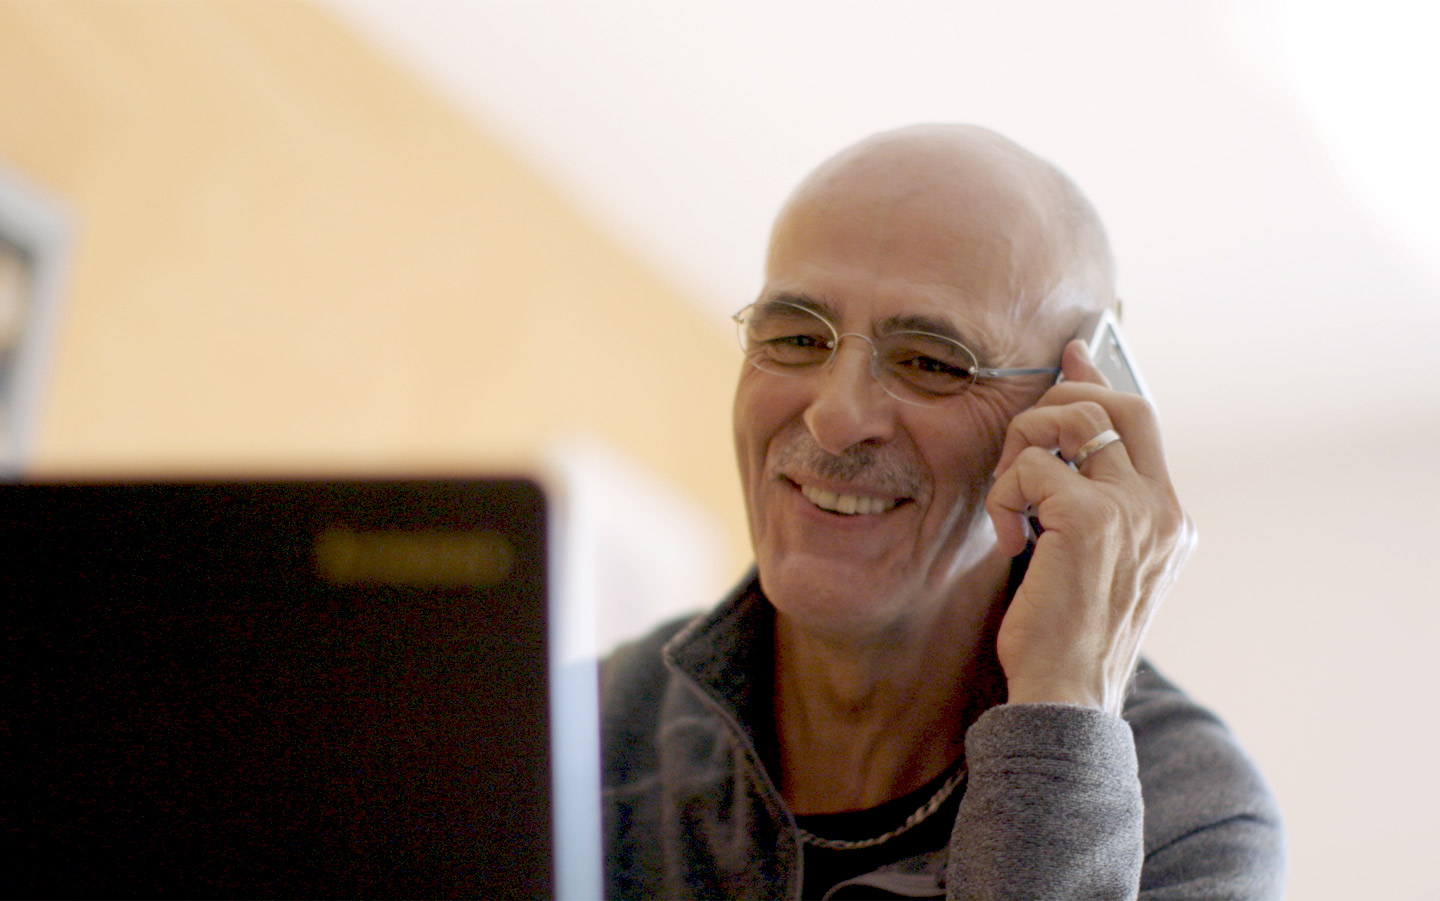 A Cochlear implant recipient talks on the phone